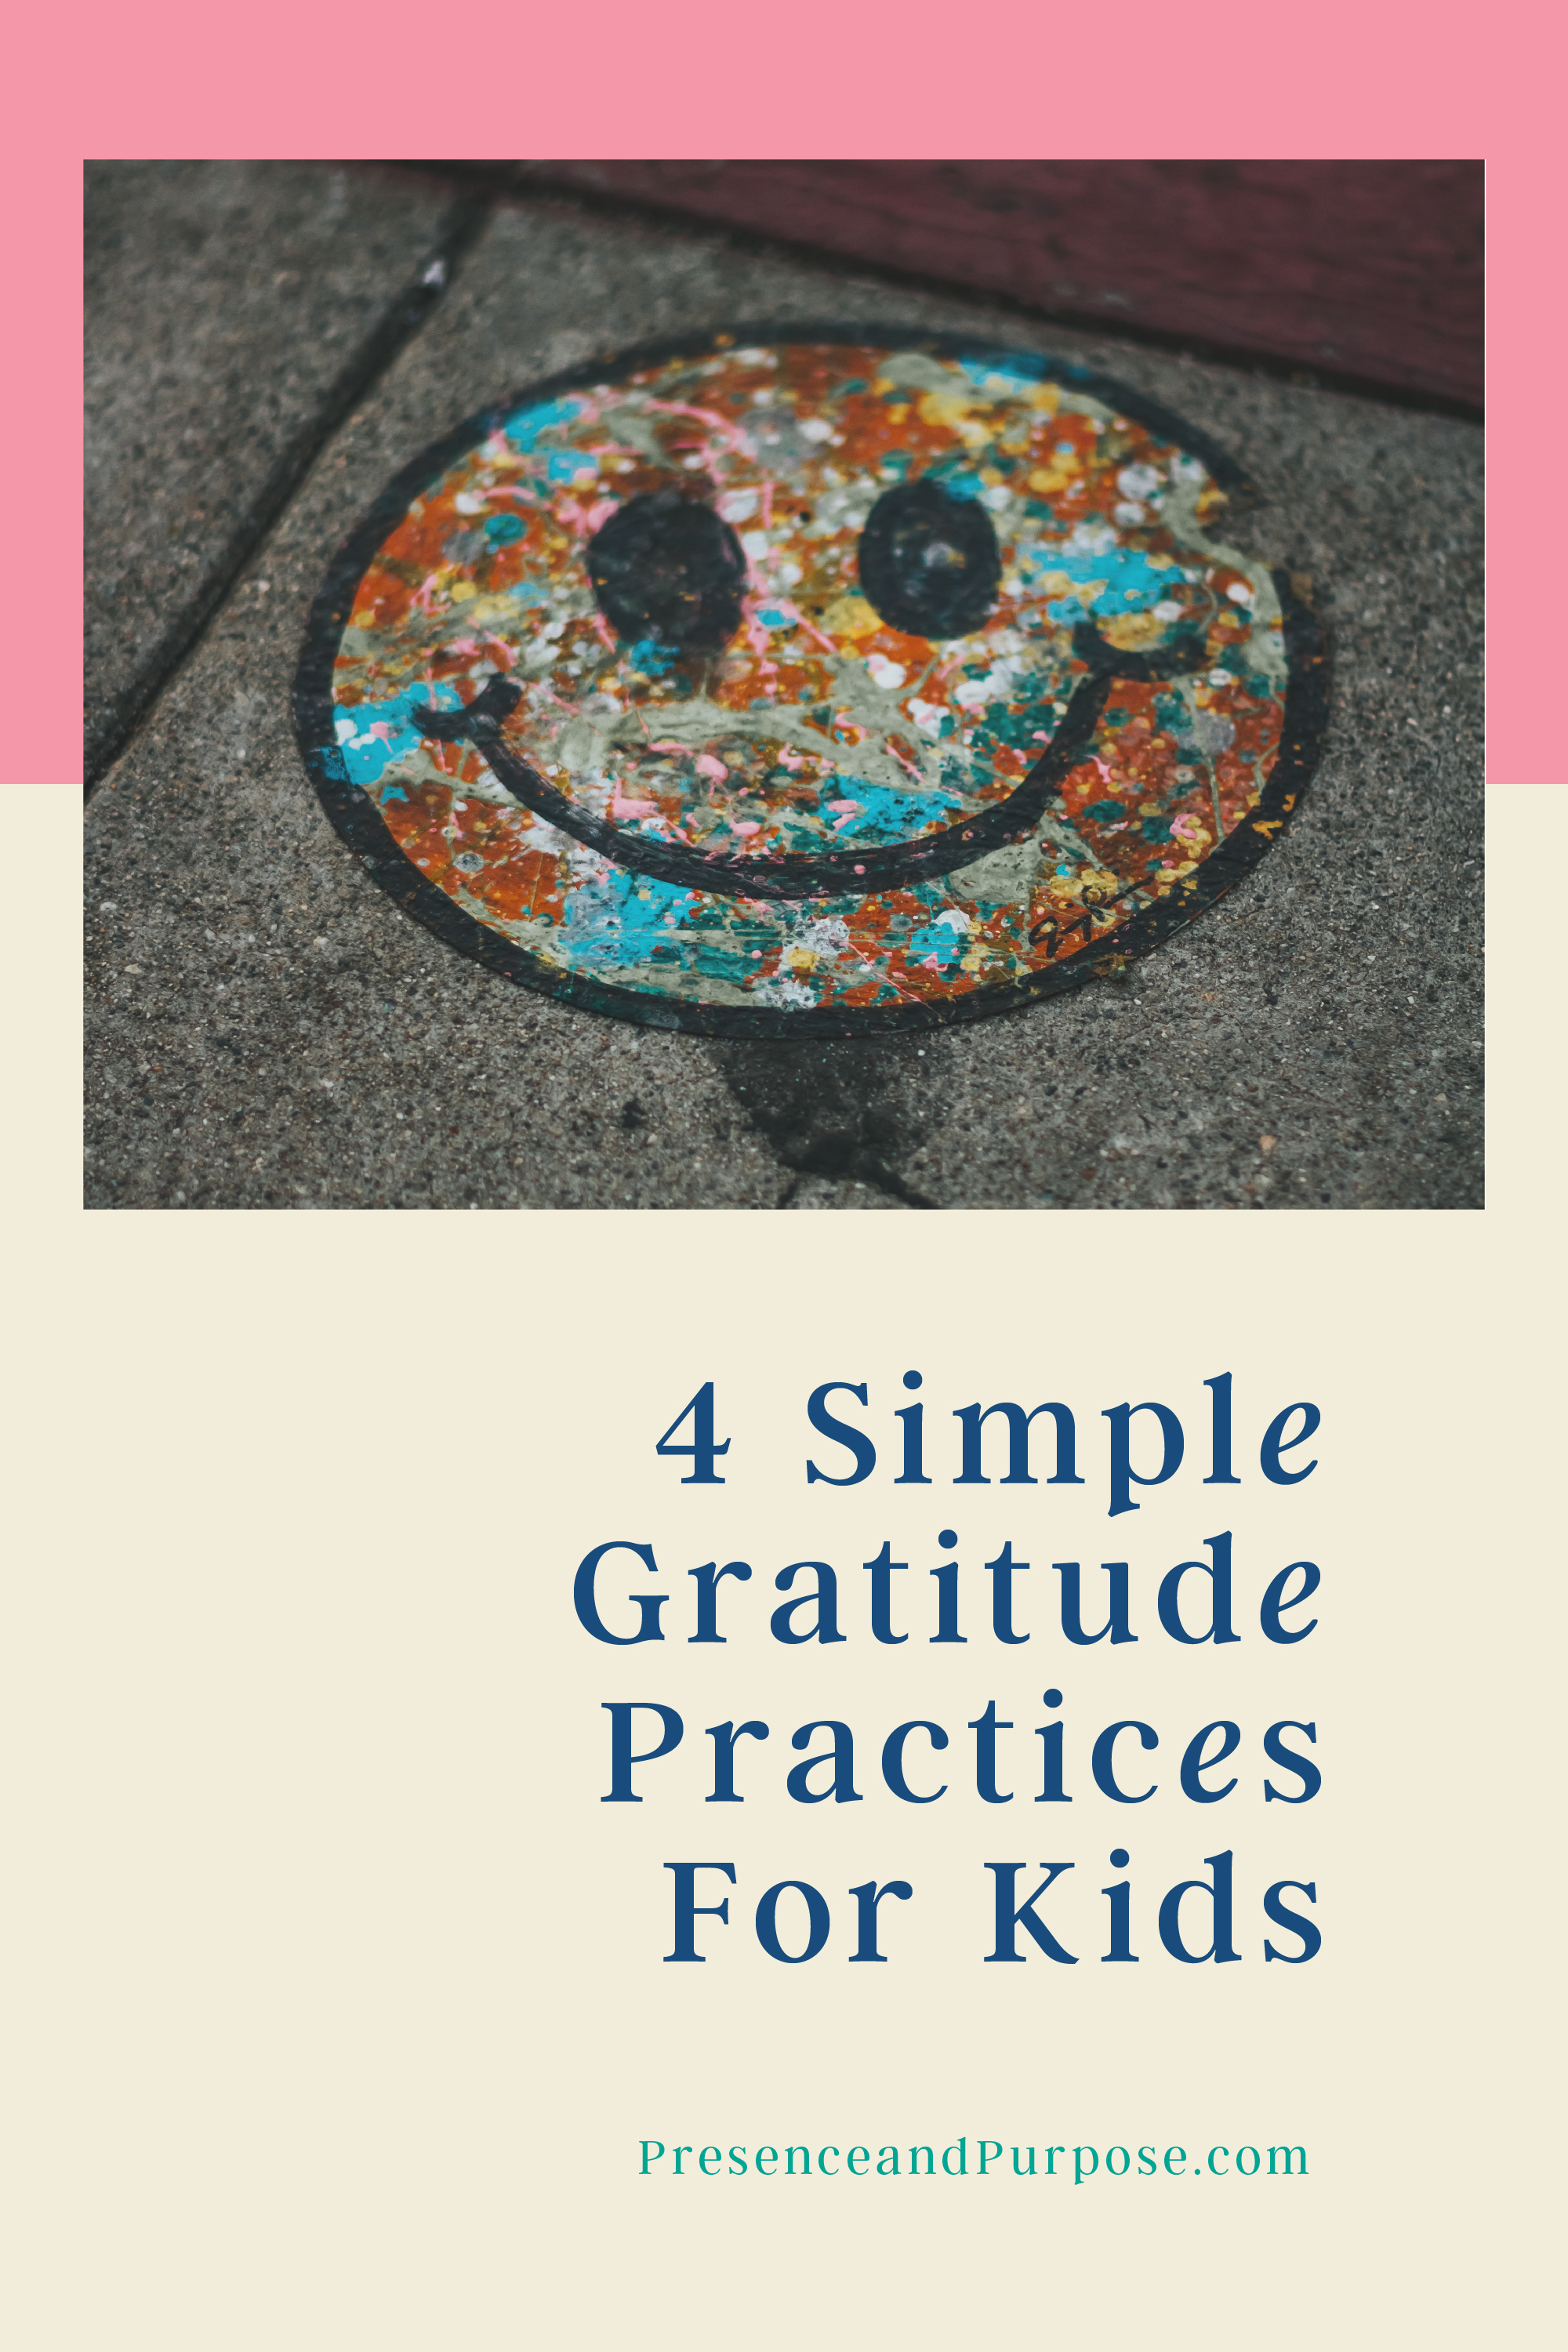 19_0106_4 Simple Gratitude Practices For Kids.jpg